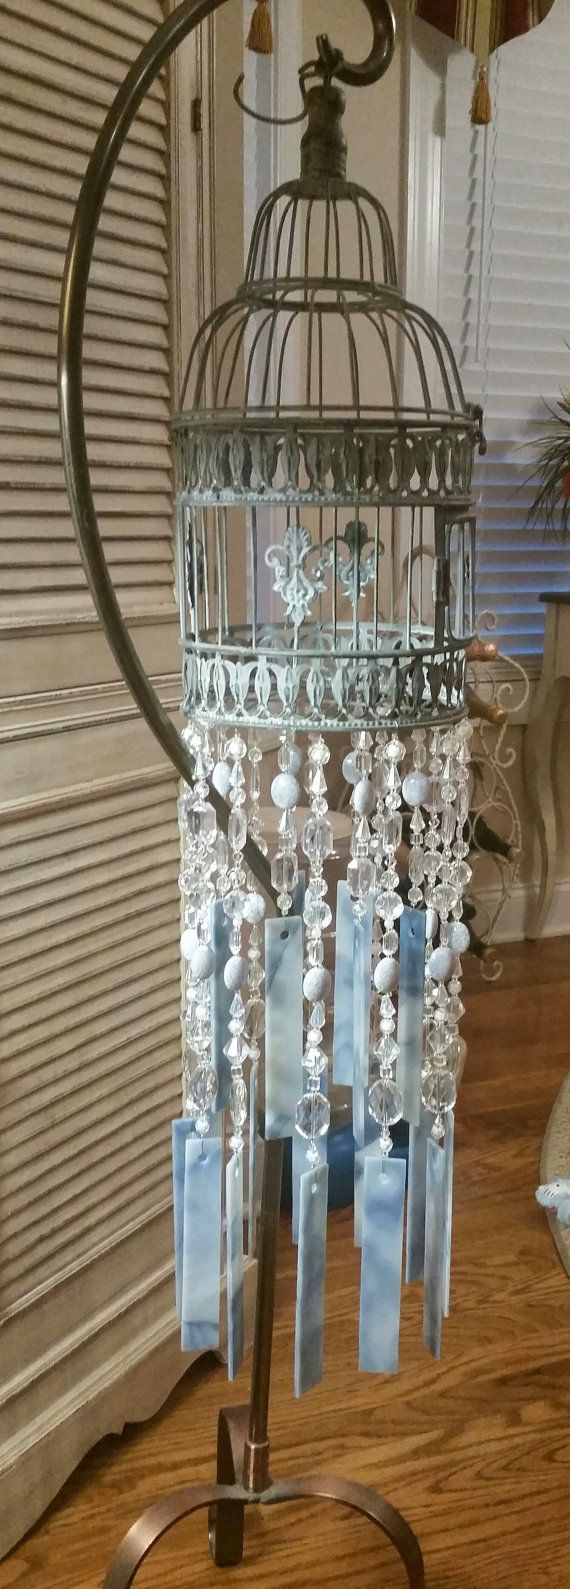 bird cage wind chime by KellisLilBoutique on Etsy